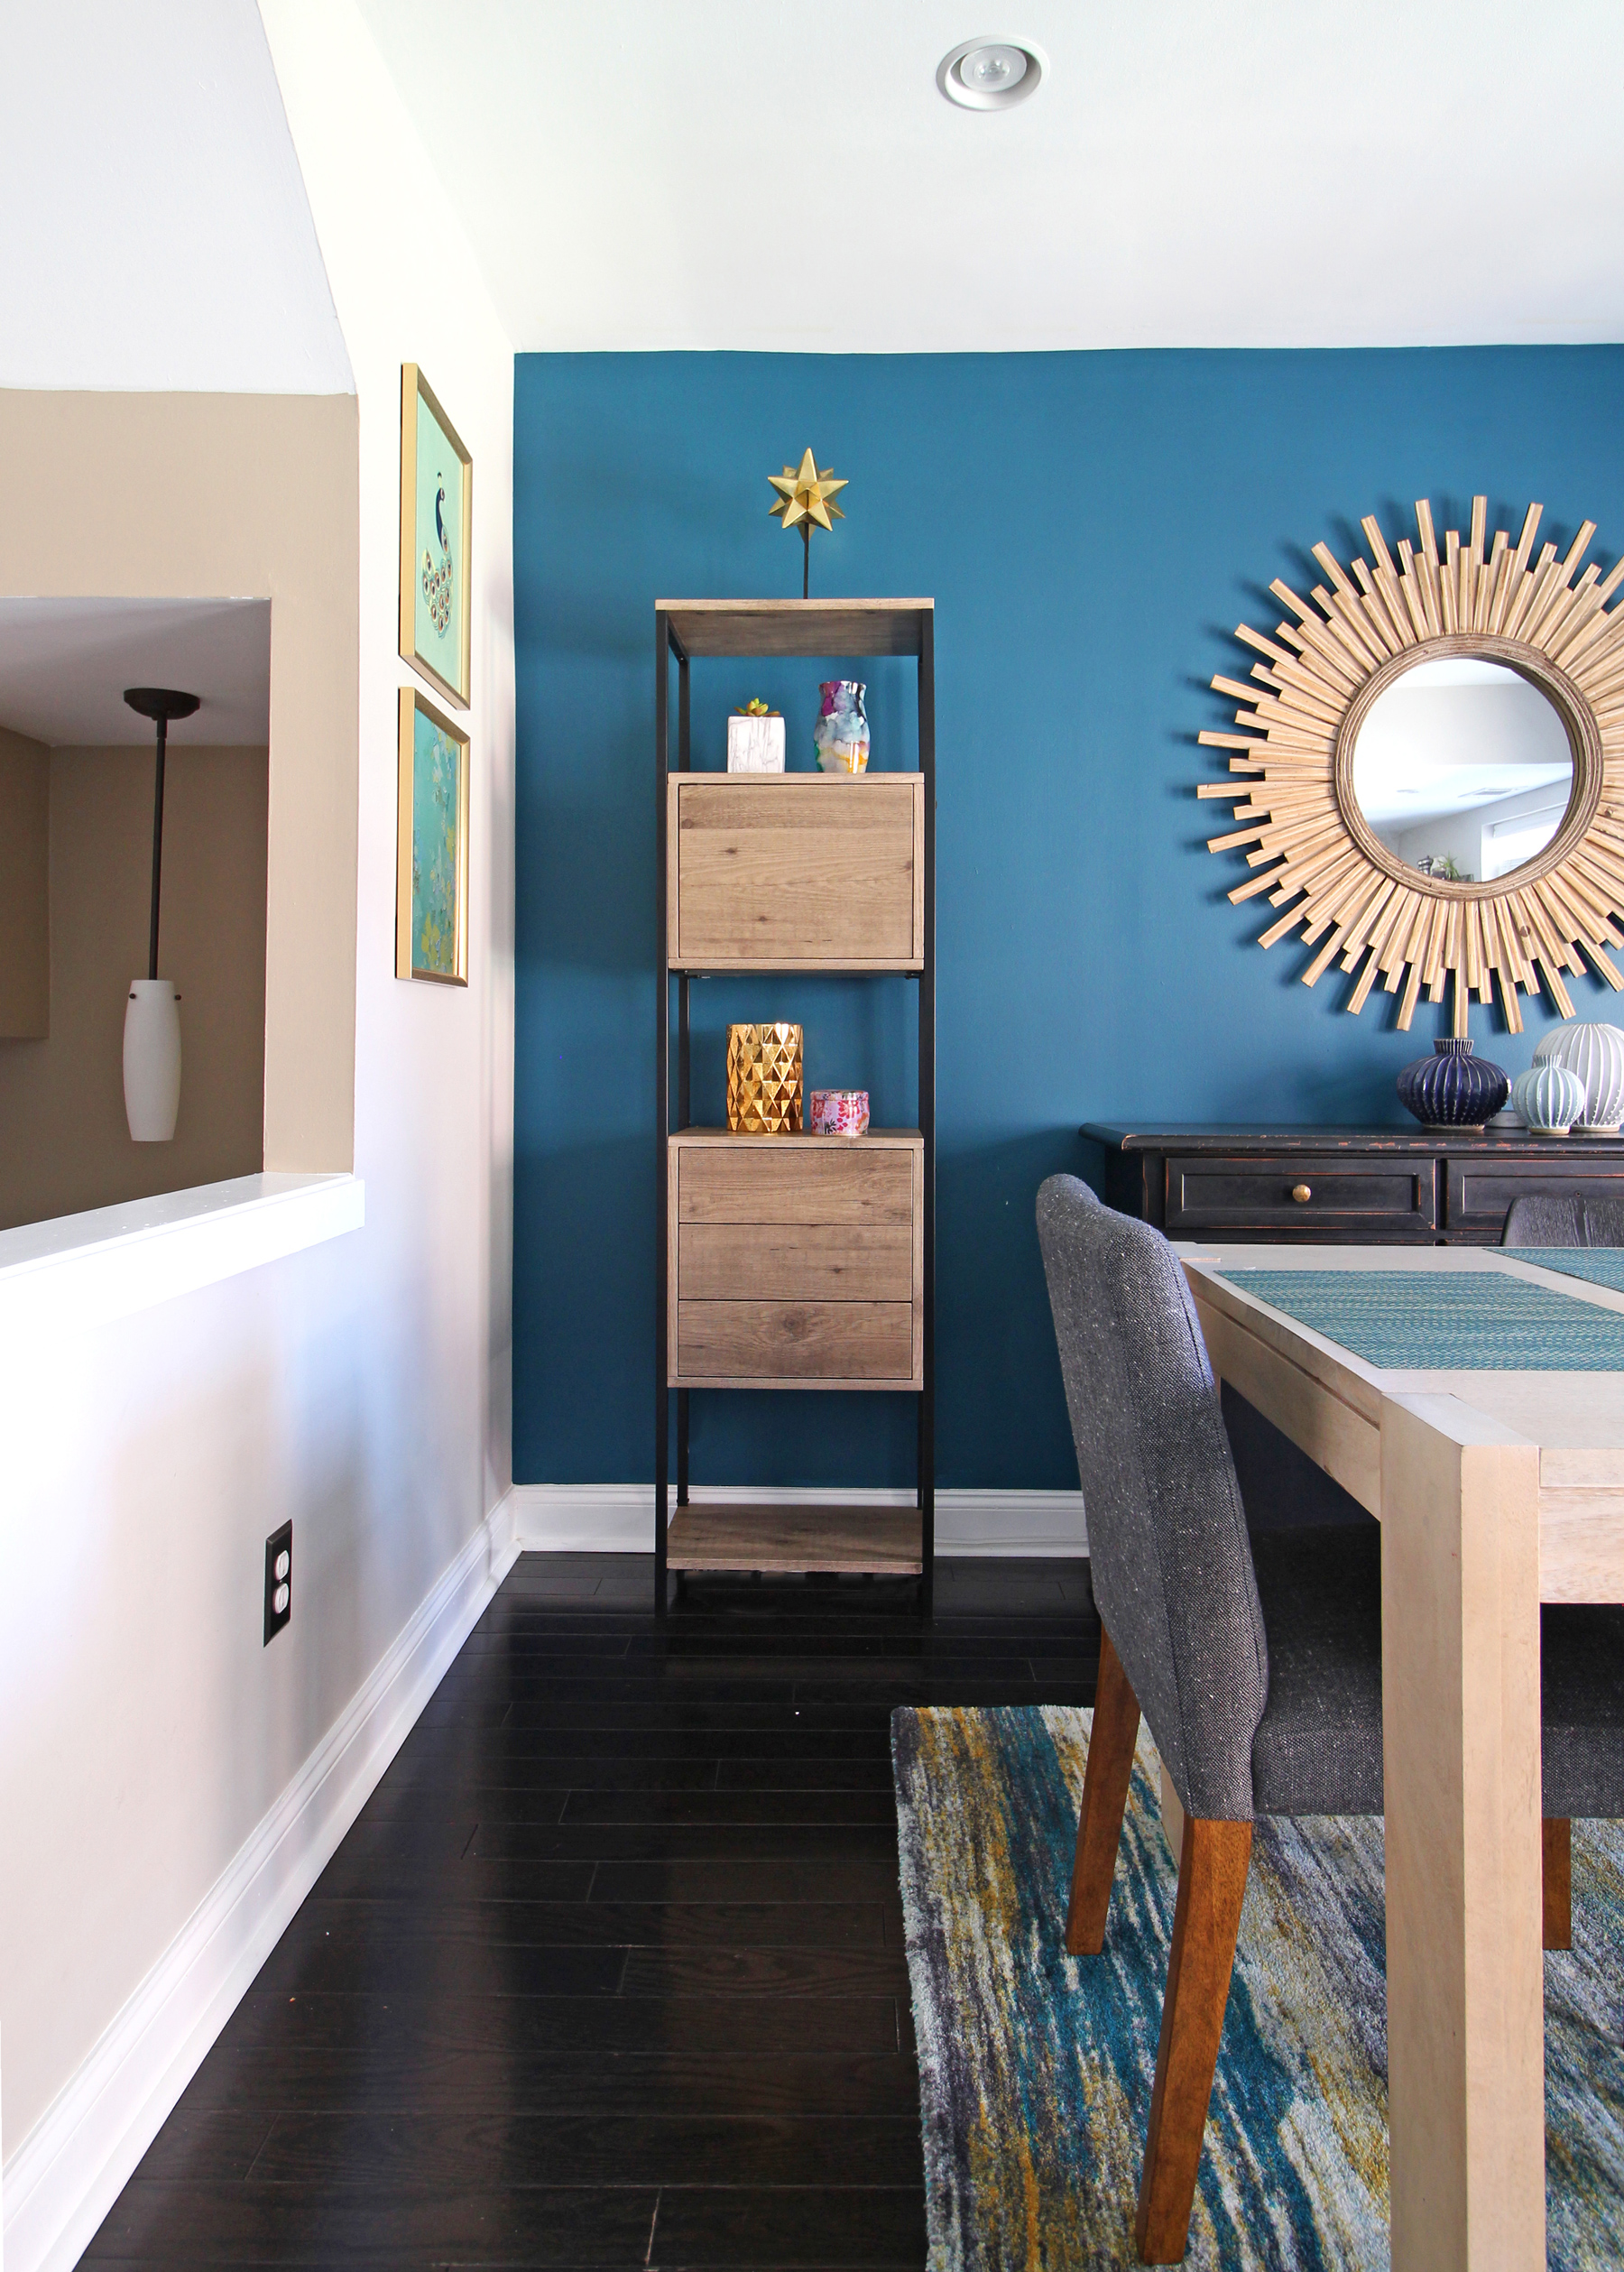 Make the most of the vertical space in your home by adding bookshelves that have both open and closed storage. Find more small space design tips over on the Mix & Match blog!